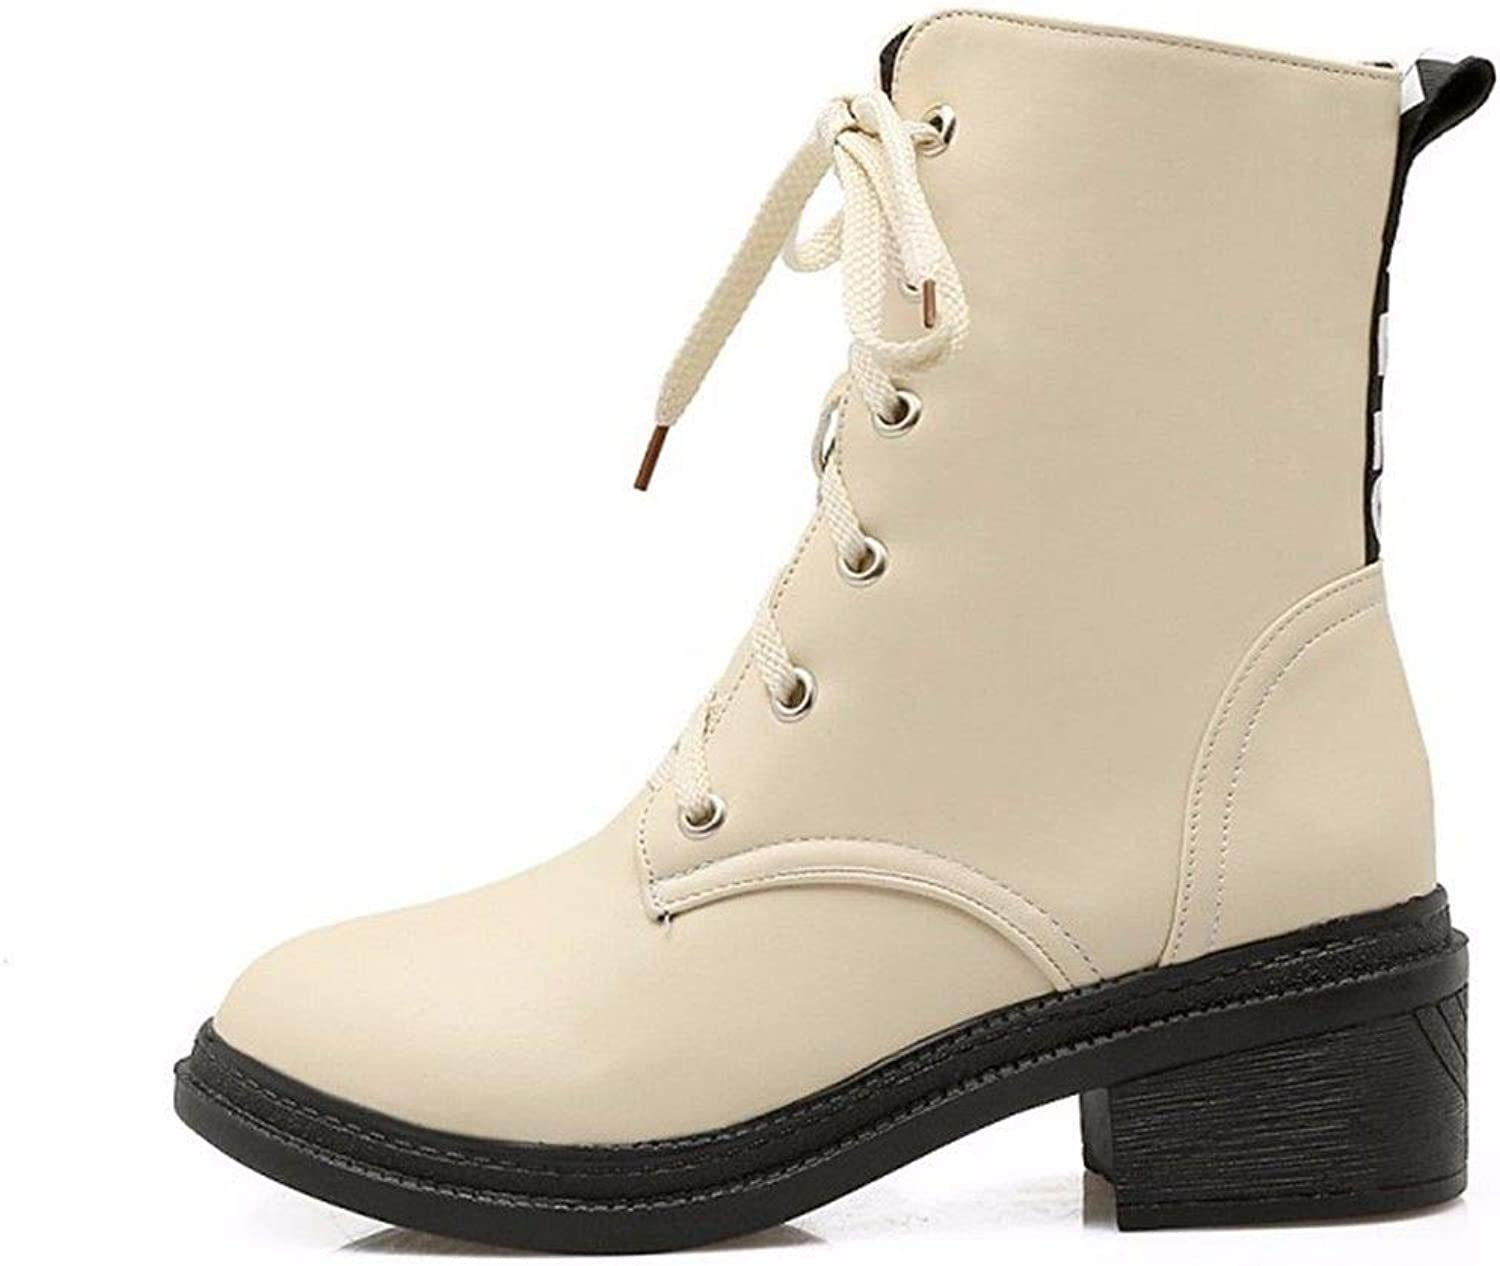 Autumn and Winter Women's tie UPS, Martin Boots, Short Barrel Students' Casual Boots